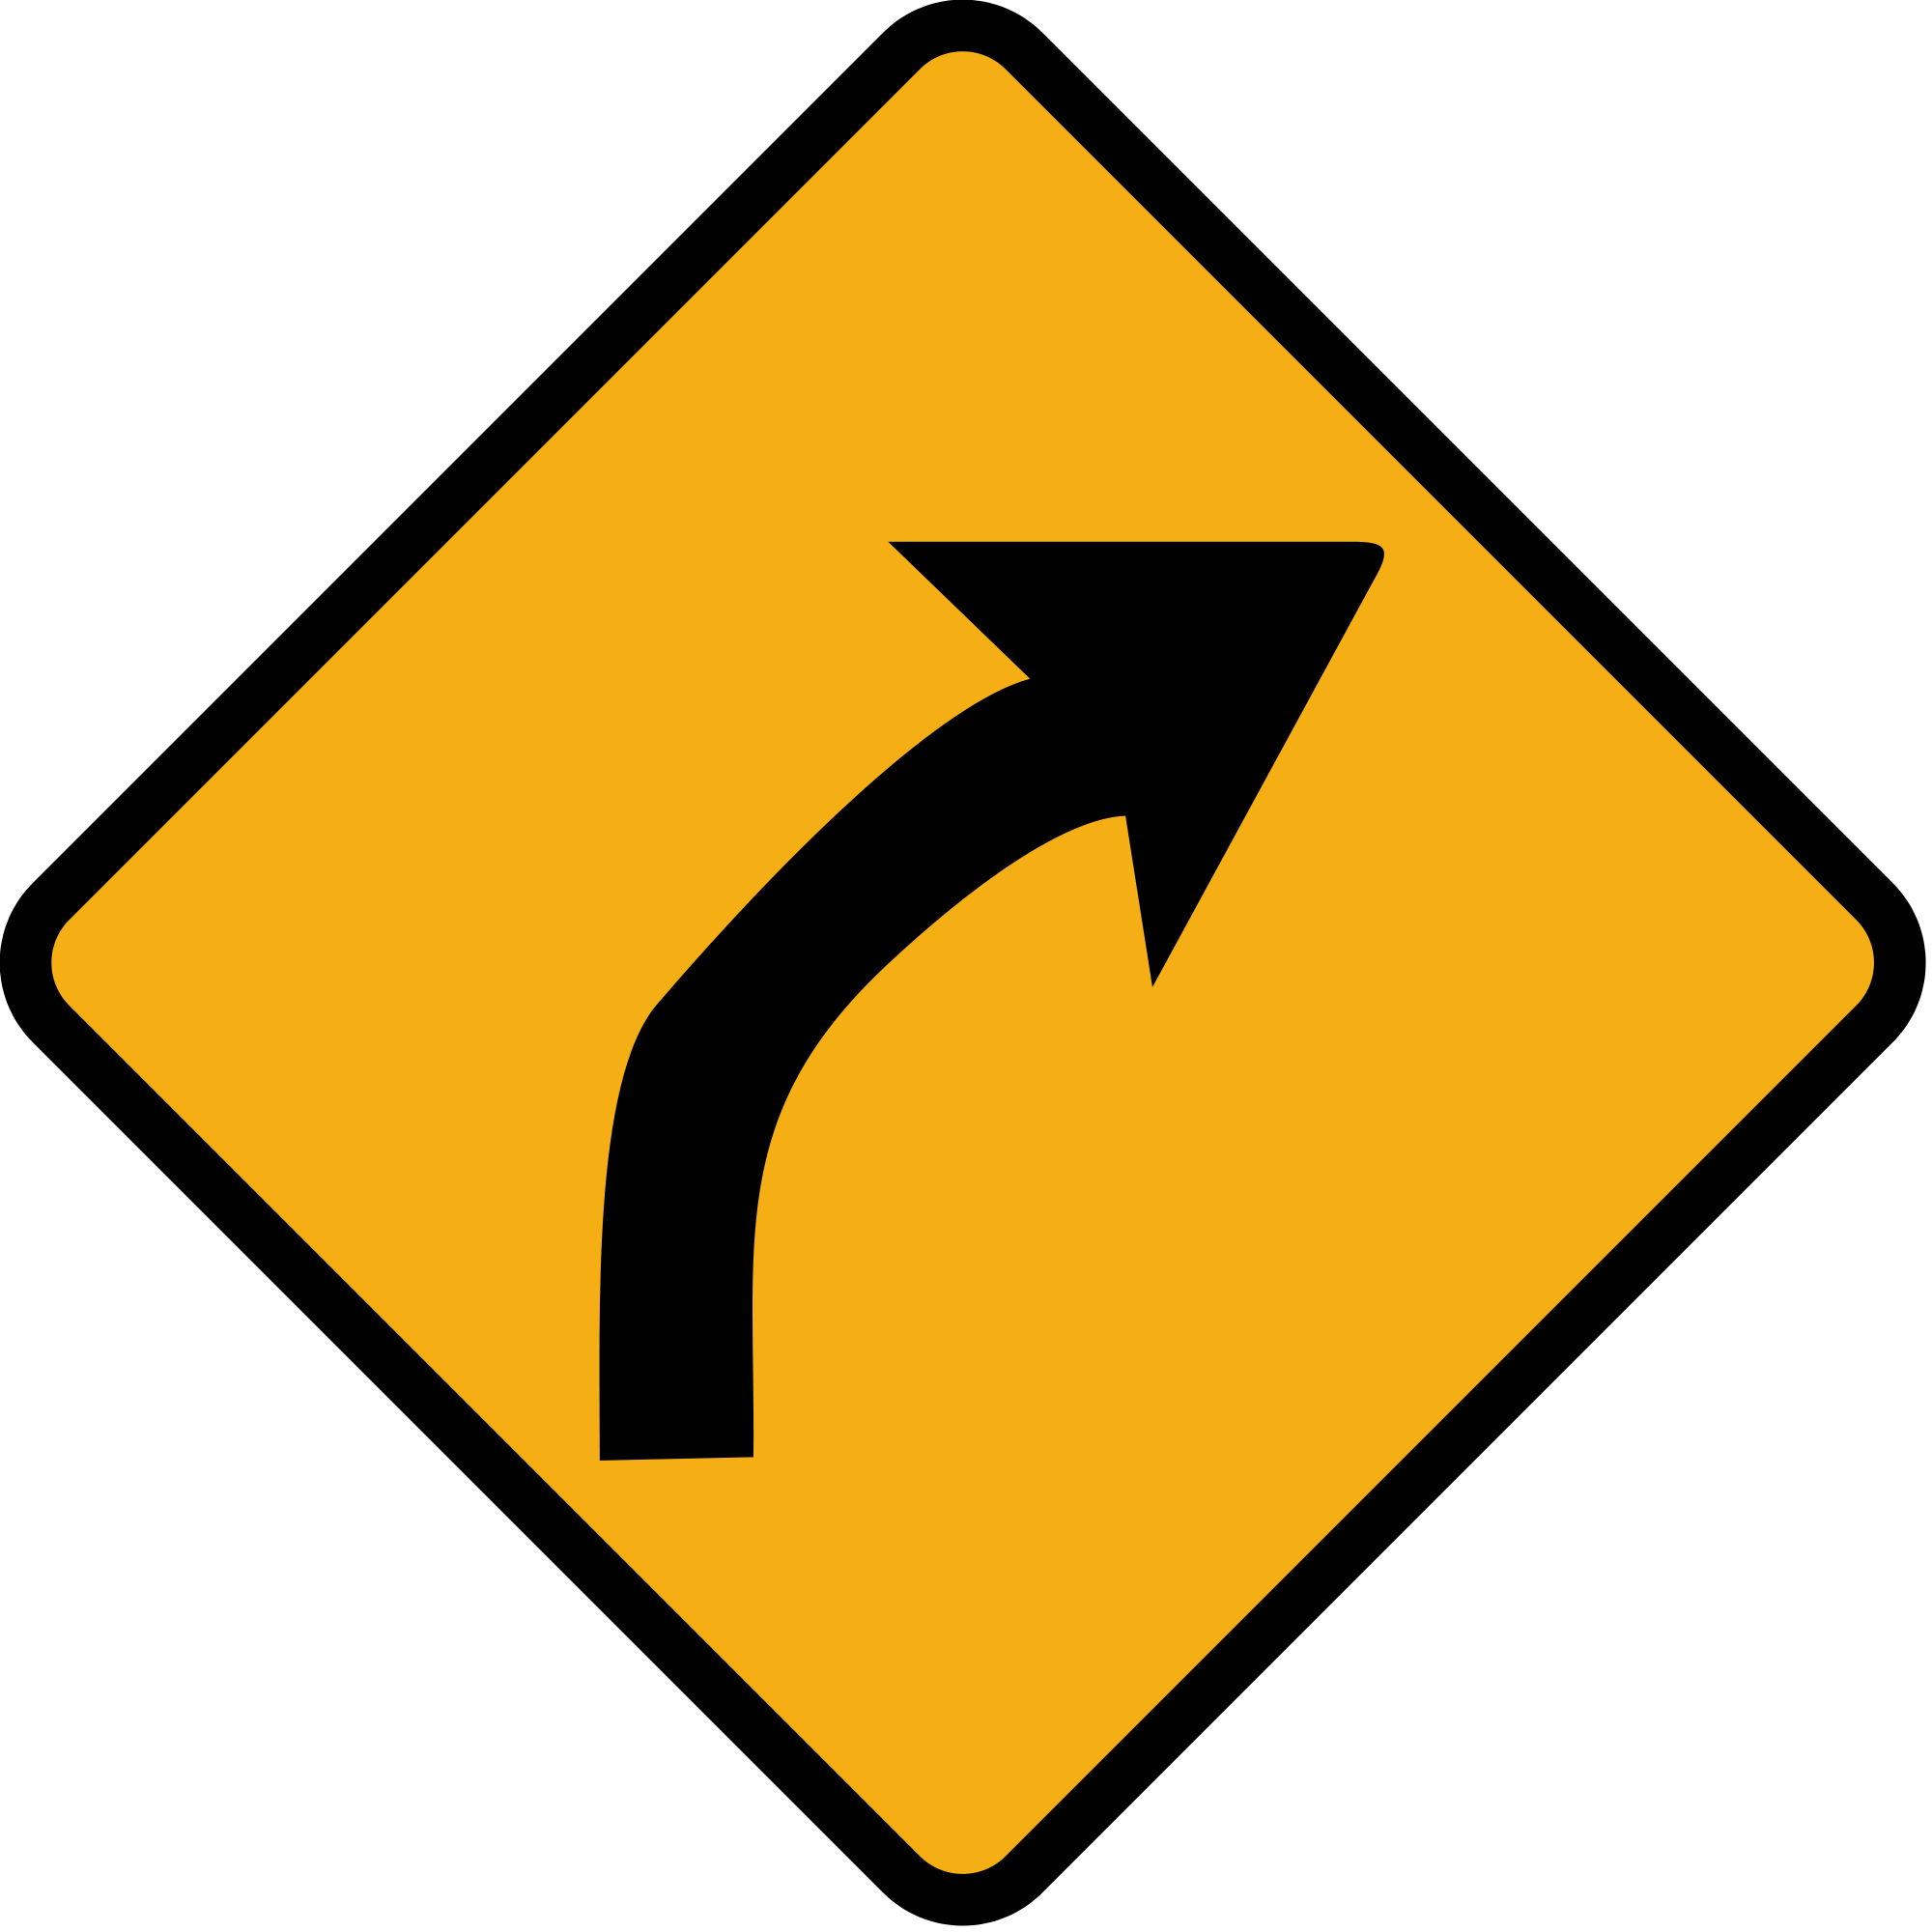 Yield to common sense